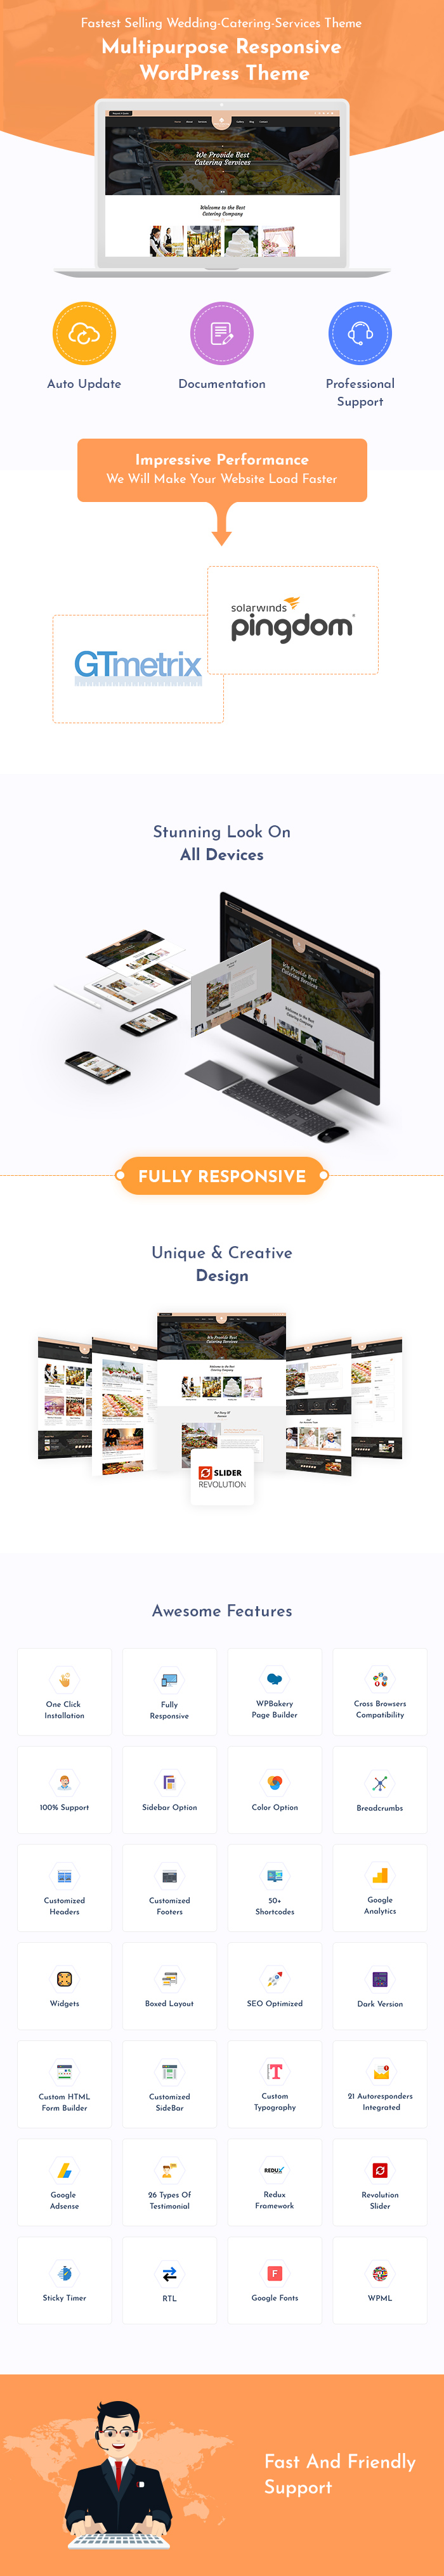 Wedding Catering Services WordPress Theme